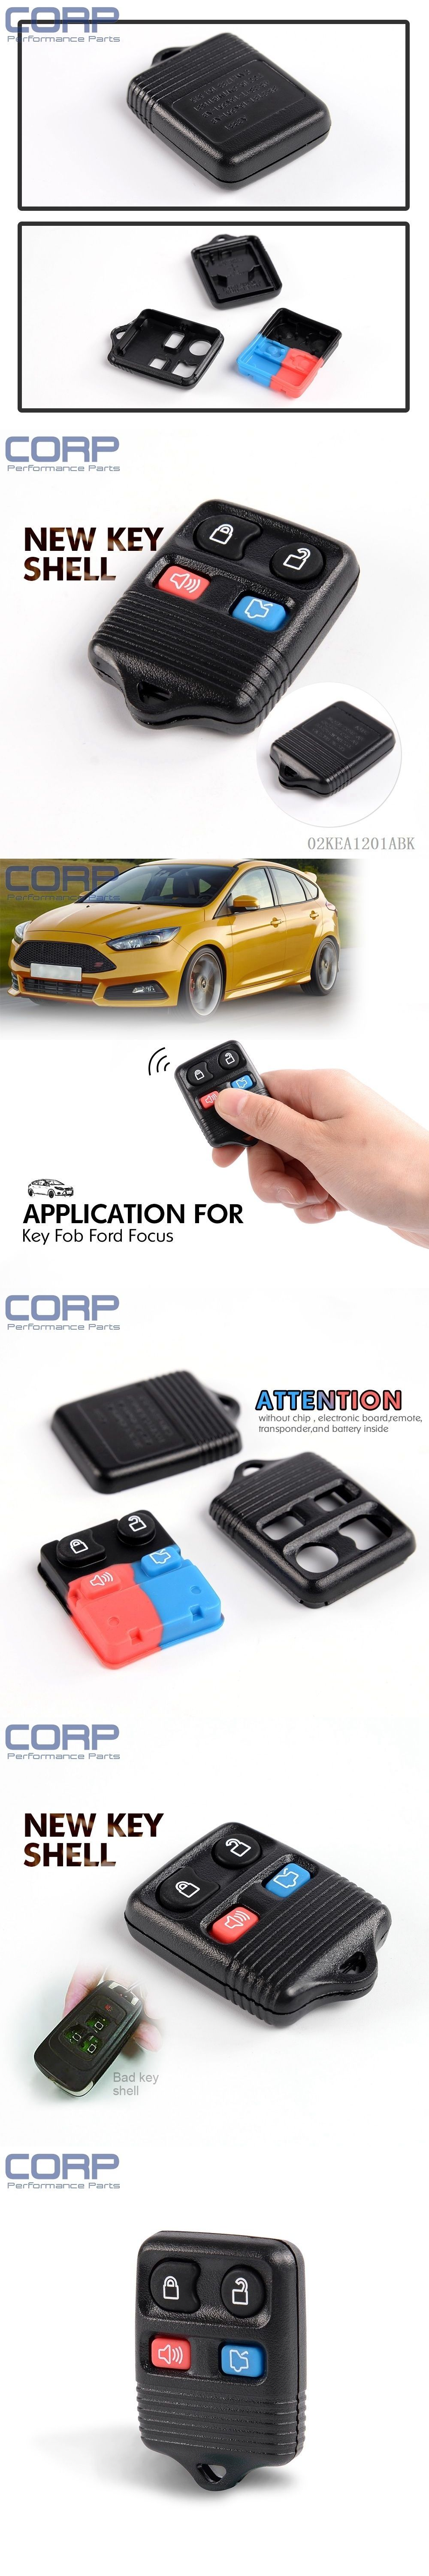 medium resolution of new case only keyless entry remote key fob for ford focus escape explorer